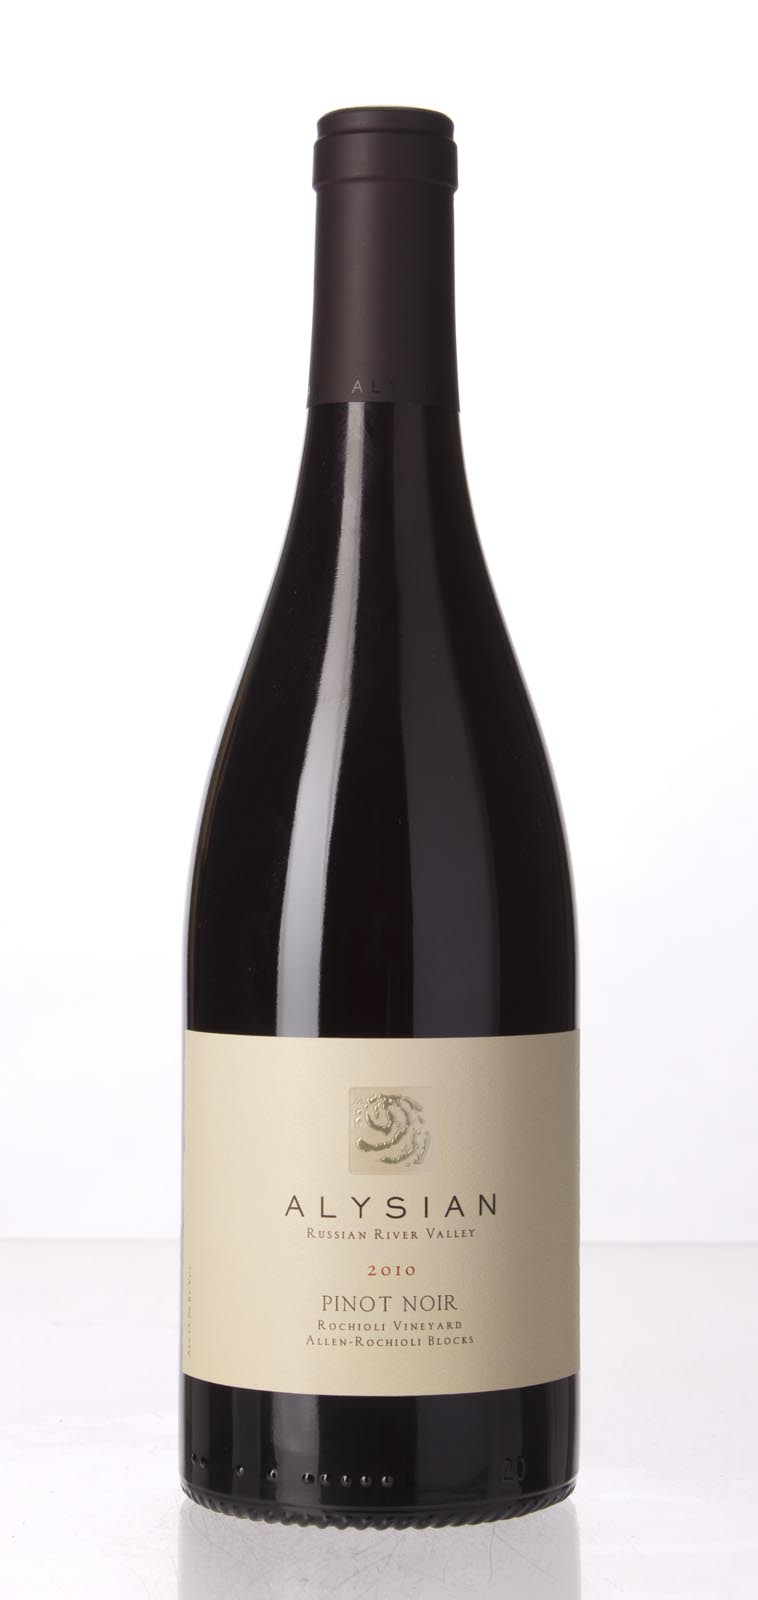 Alysian Wines Pinot Noir Rochioli Vineyard Allen Rochioli Blocks 2010,  () from The BPW - Merchants of rare and fine wines.